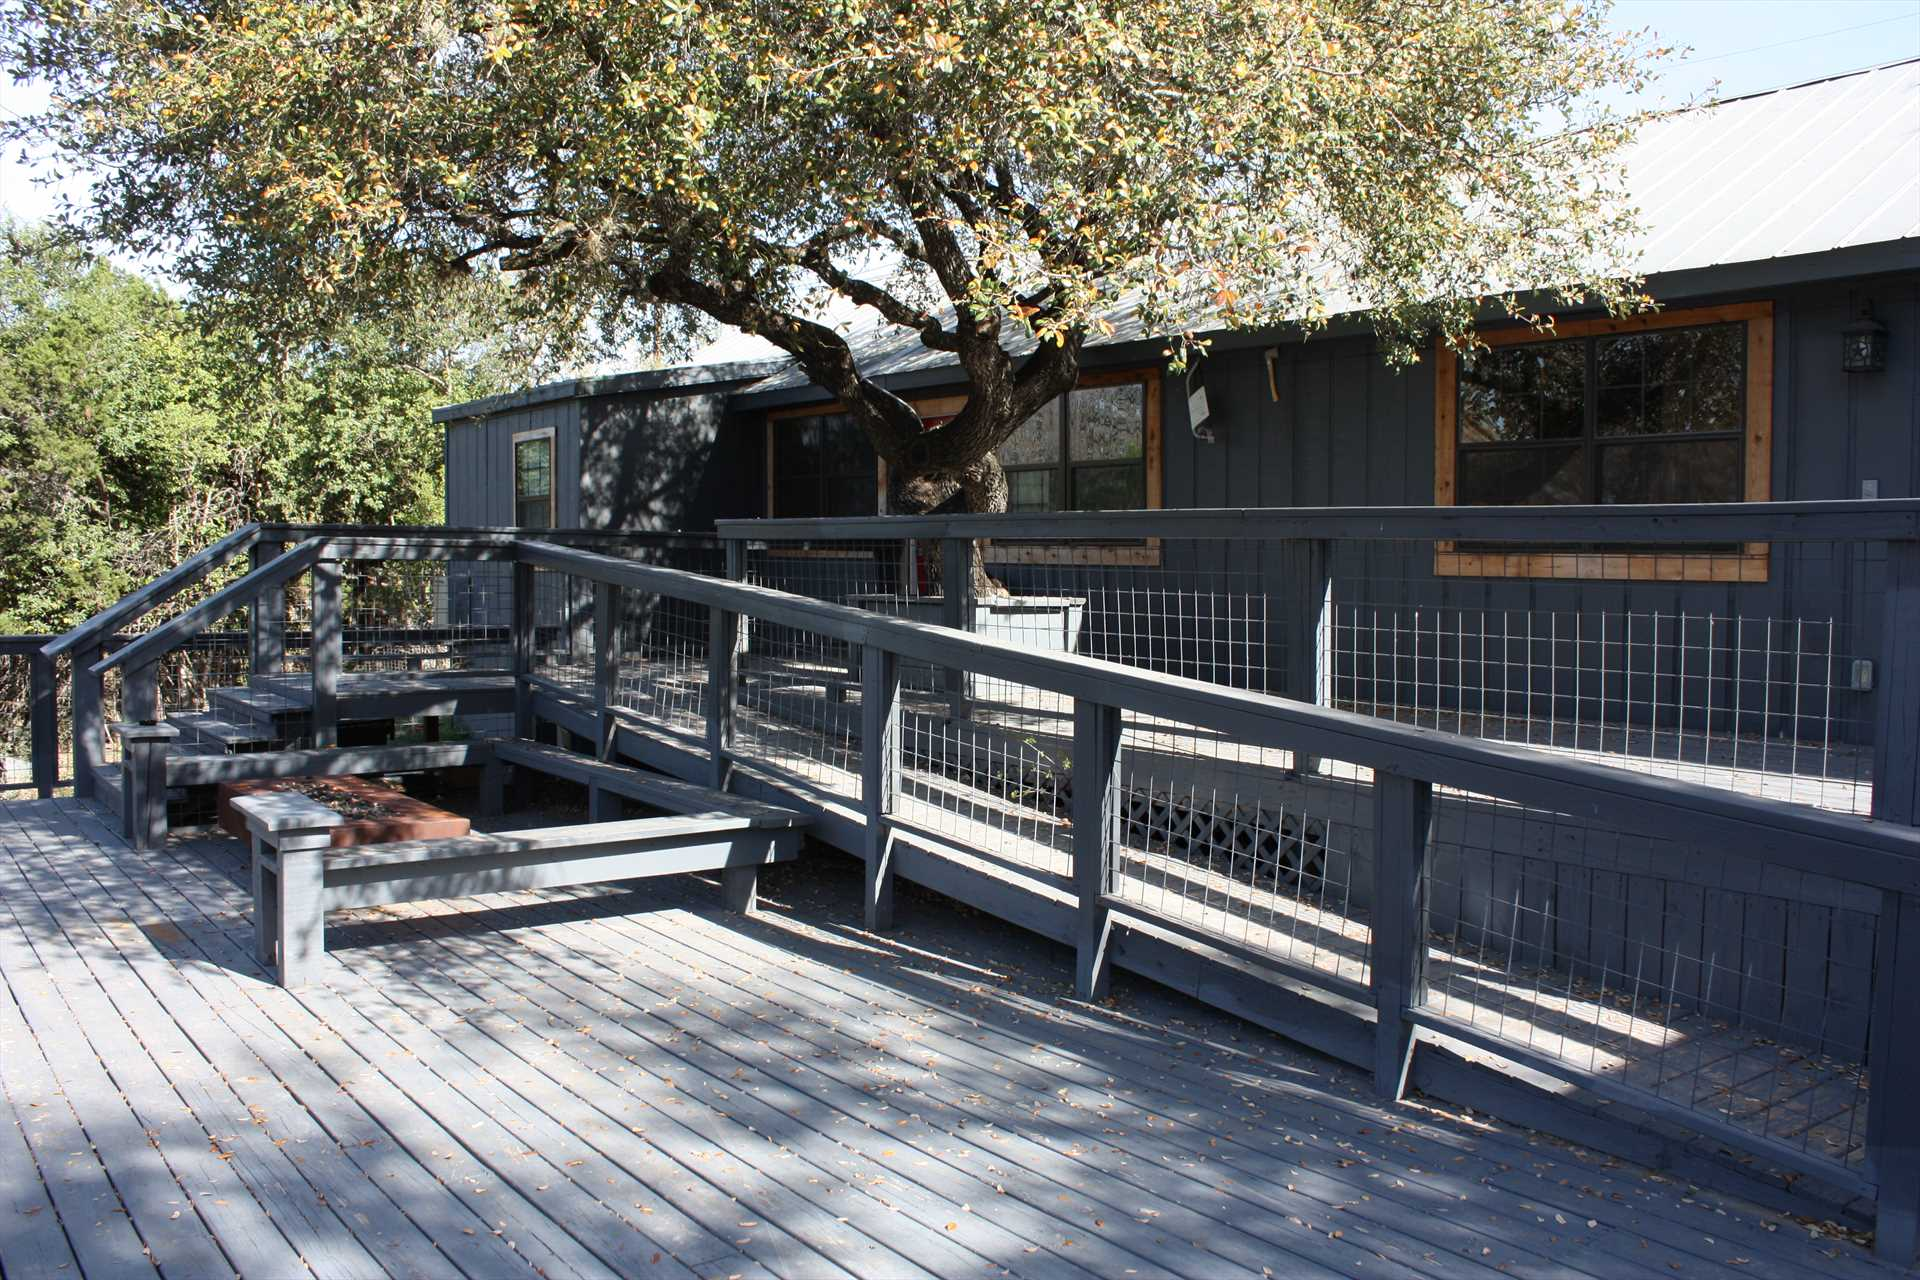 Shady spots, plenty of seating, great stargazing, and great Hill Country views are all in store on the enormous multi-level deck!